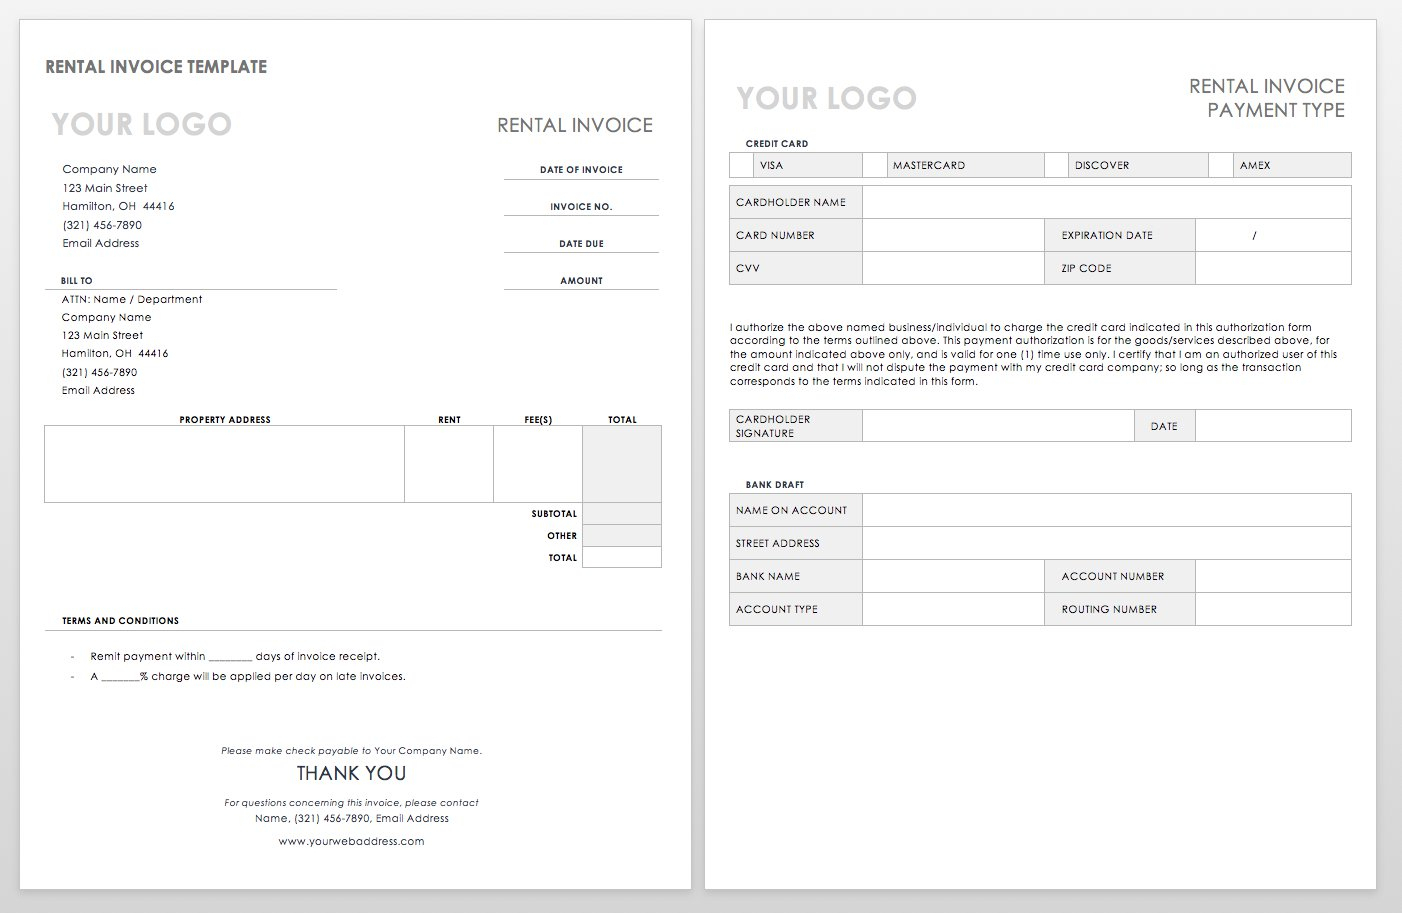 55 Free Invoice Templates | Smartsheet for Free Printable Blank Templates For Paid And Owed